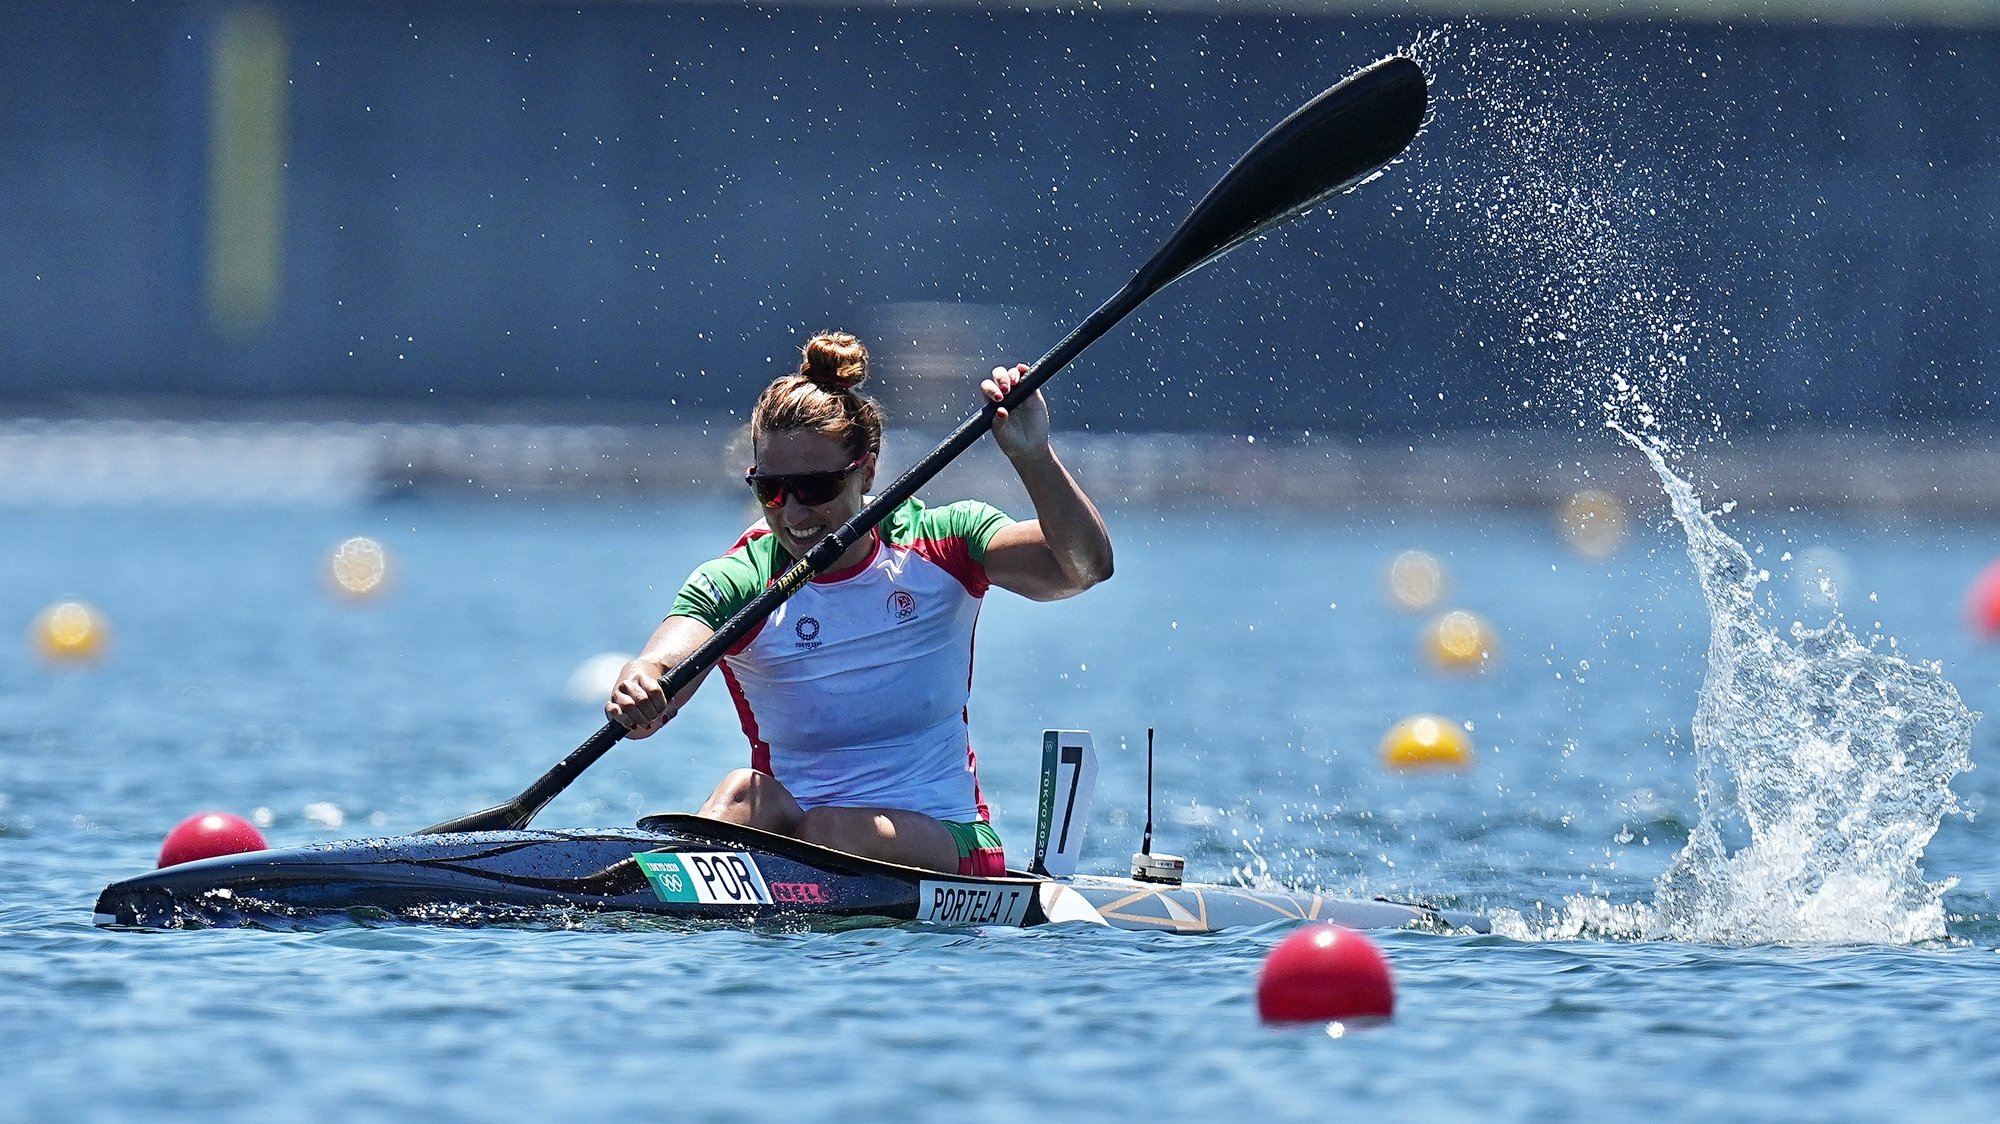 epa09396562 Portuguese Teresa Portela competes in the Women's Kayak Single 500m during the Canoeing Sprint events of the Tokyo 2020 Olympic Games at the Sea Forest Waterway in Tokyo, Japan, 05 August 2021.  EPA/NIC BOTHMA